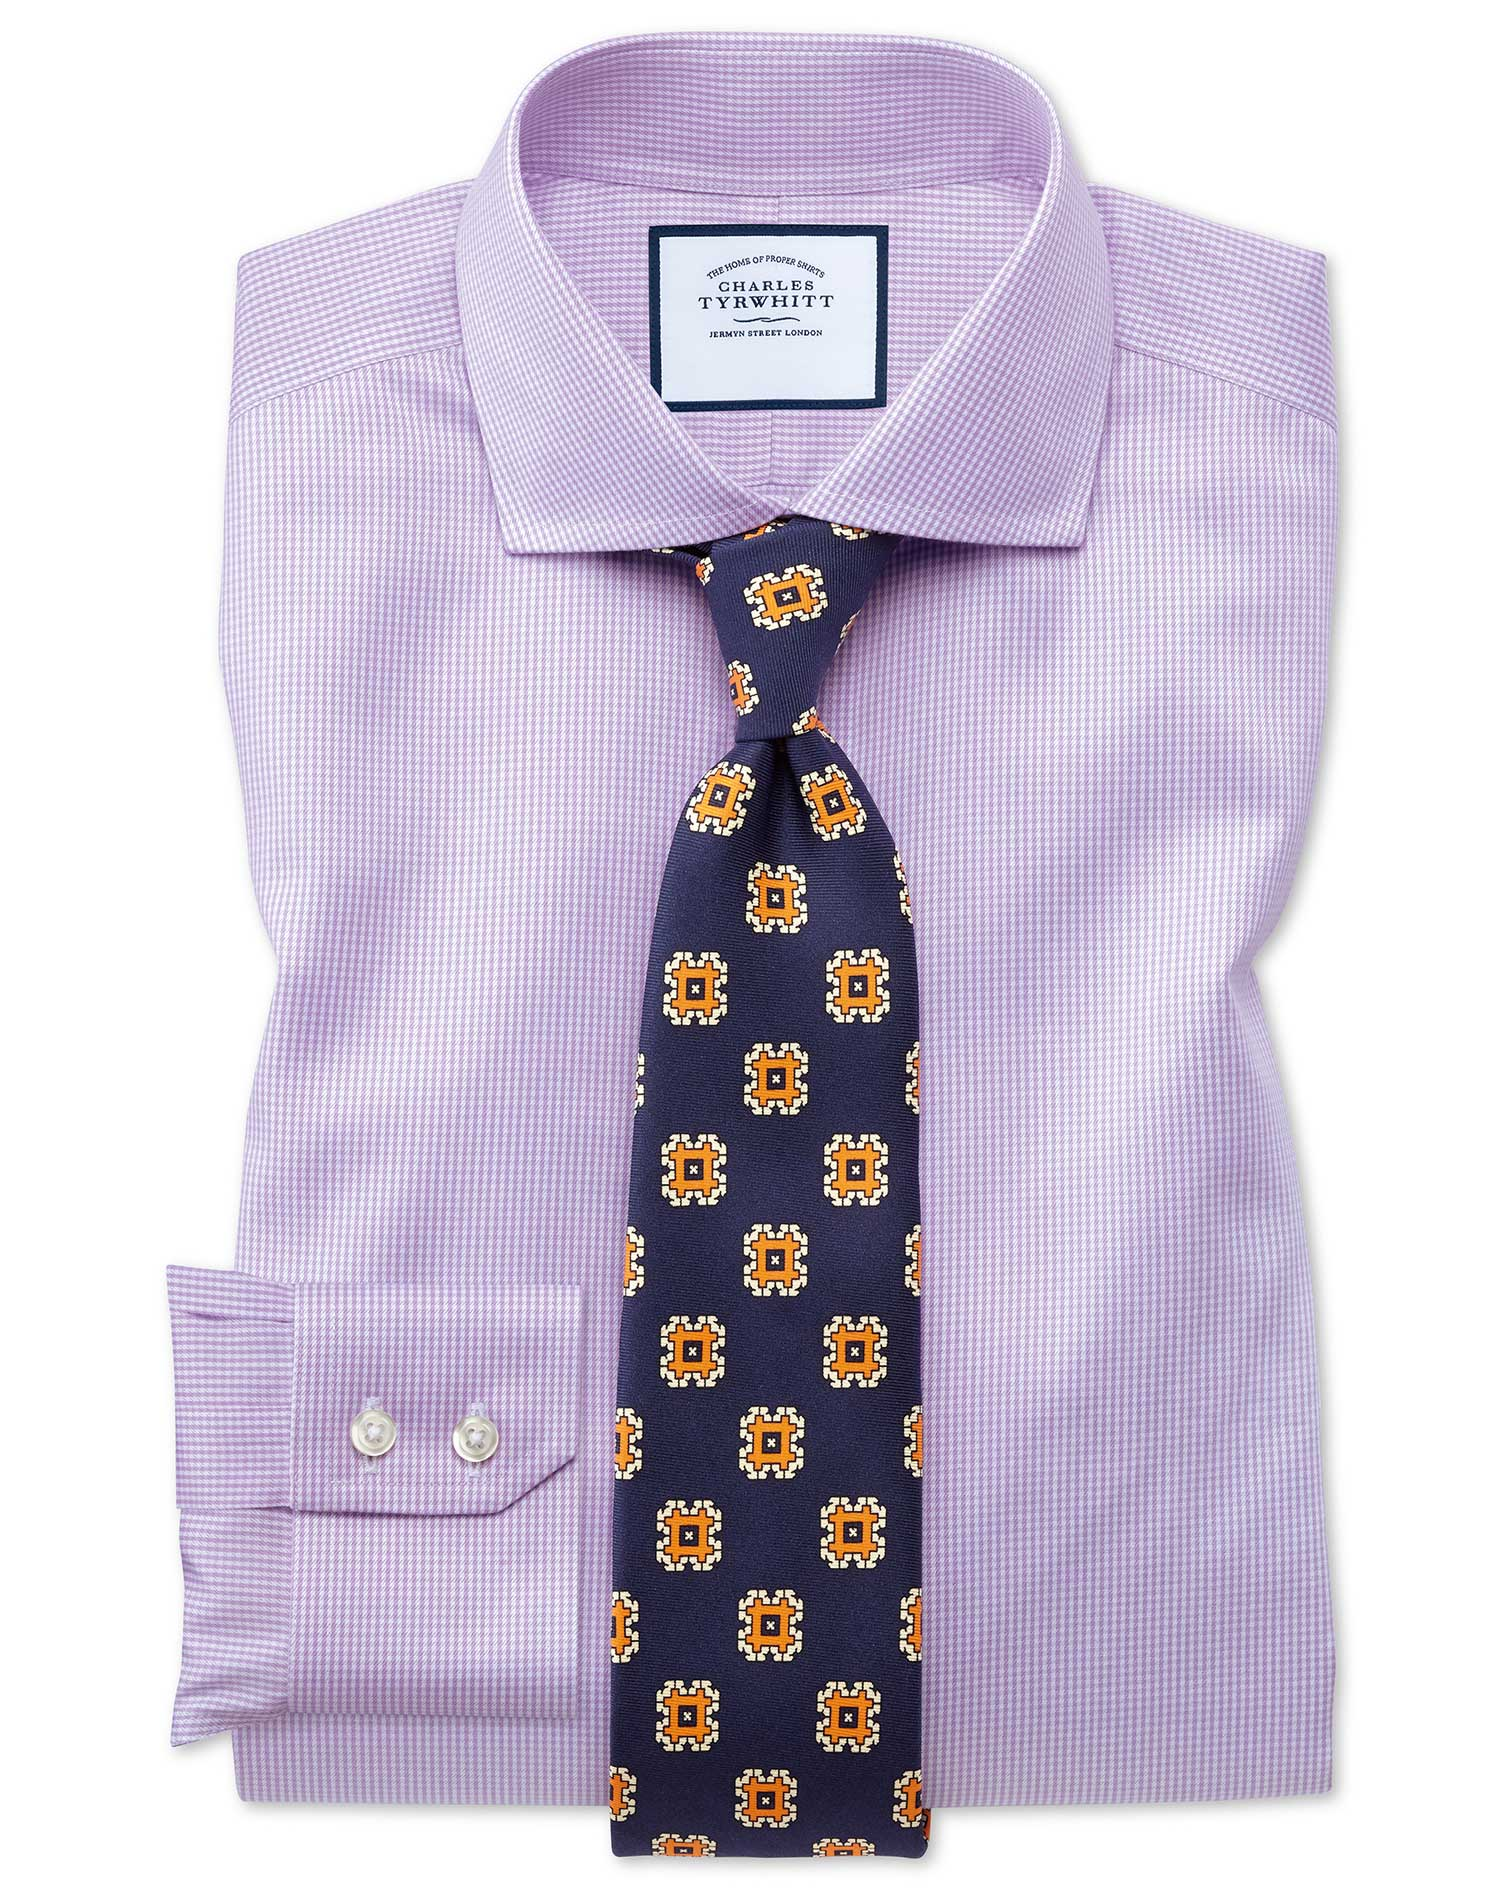 Slim Fit Cutaway Non-Iron Puppytooth Lilac Cotton Formal Shirt Double Cuff Size 16.5/36 by Charles T